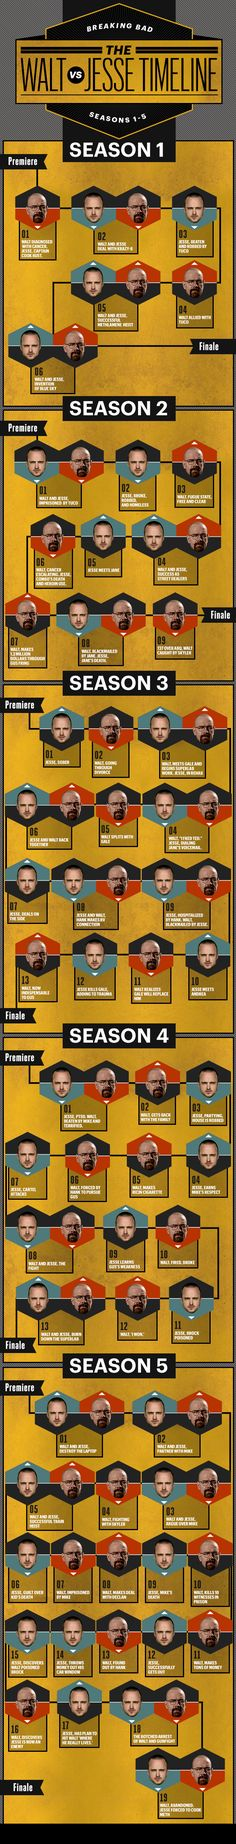 Walt and Jesse Breaking Bad - The Walt Jesse Connection - Esquire